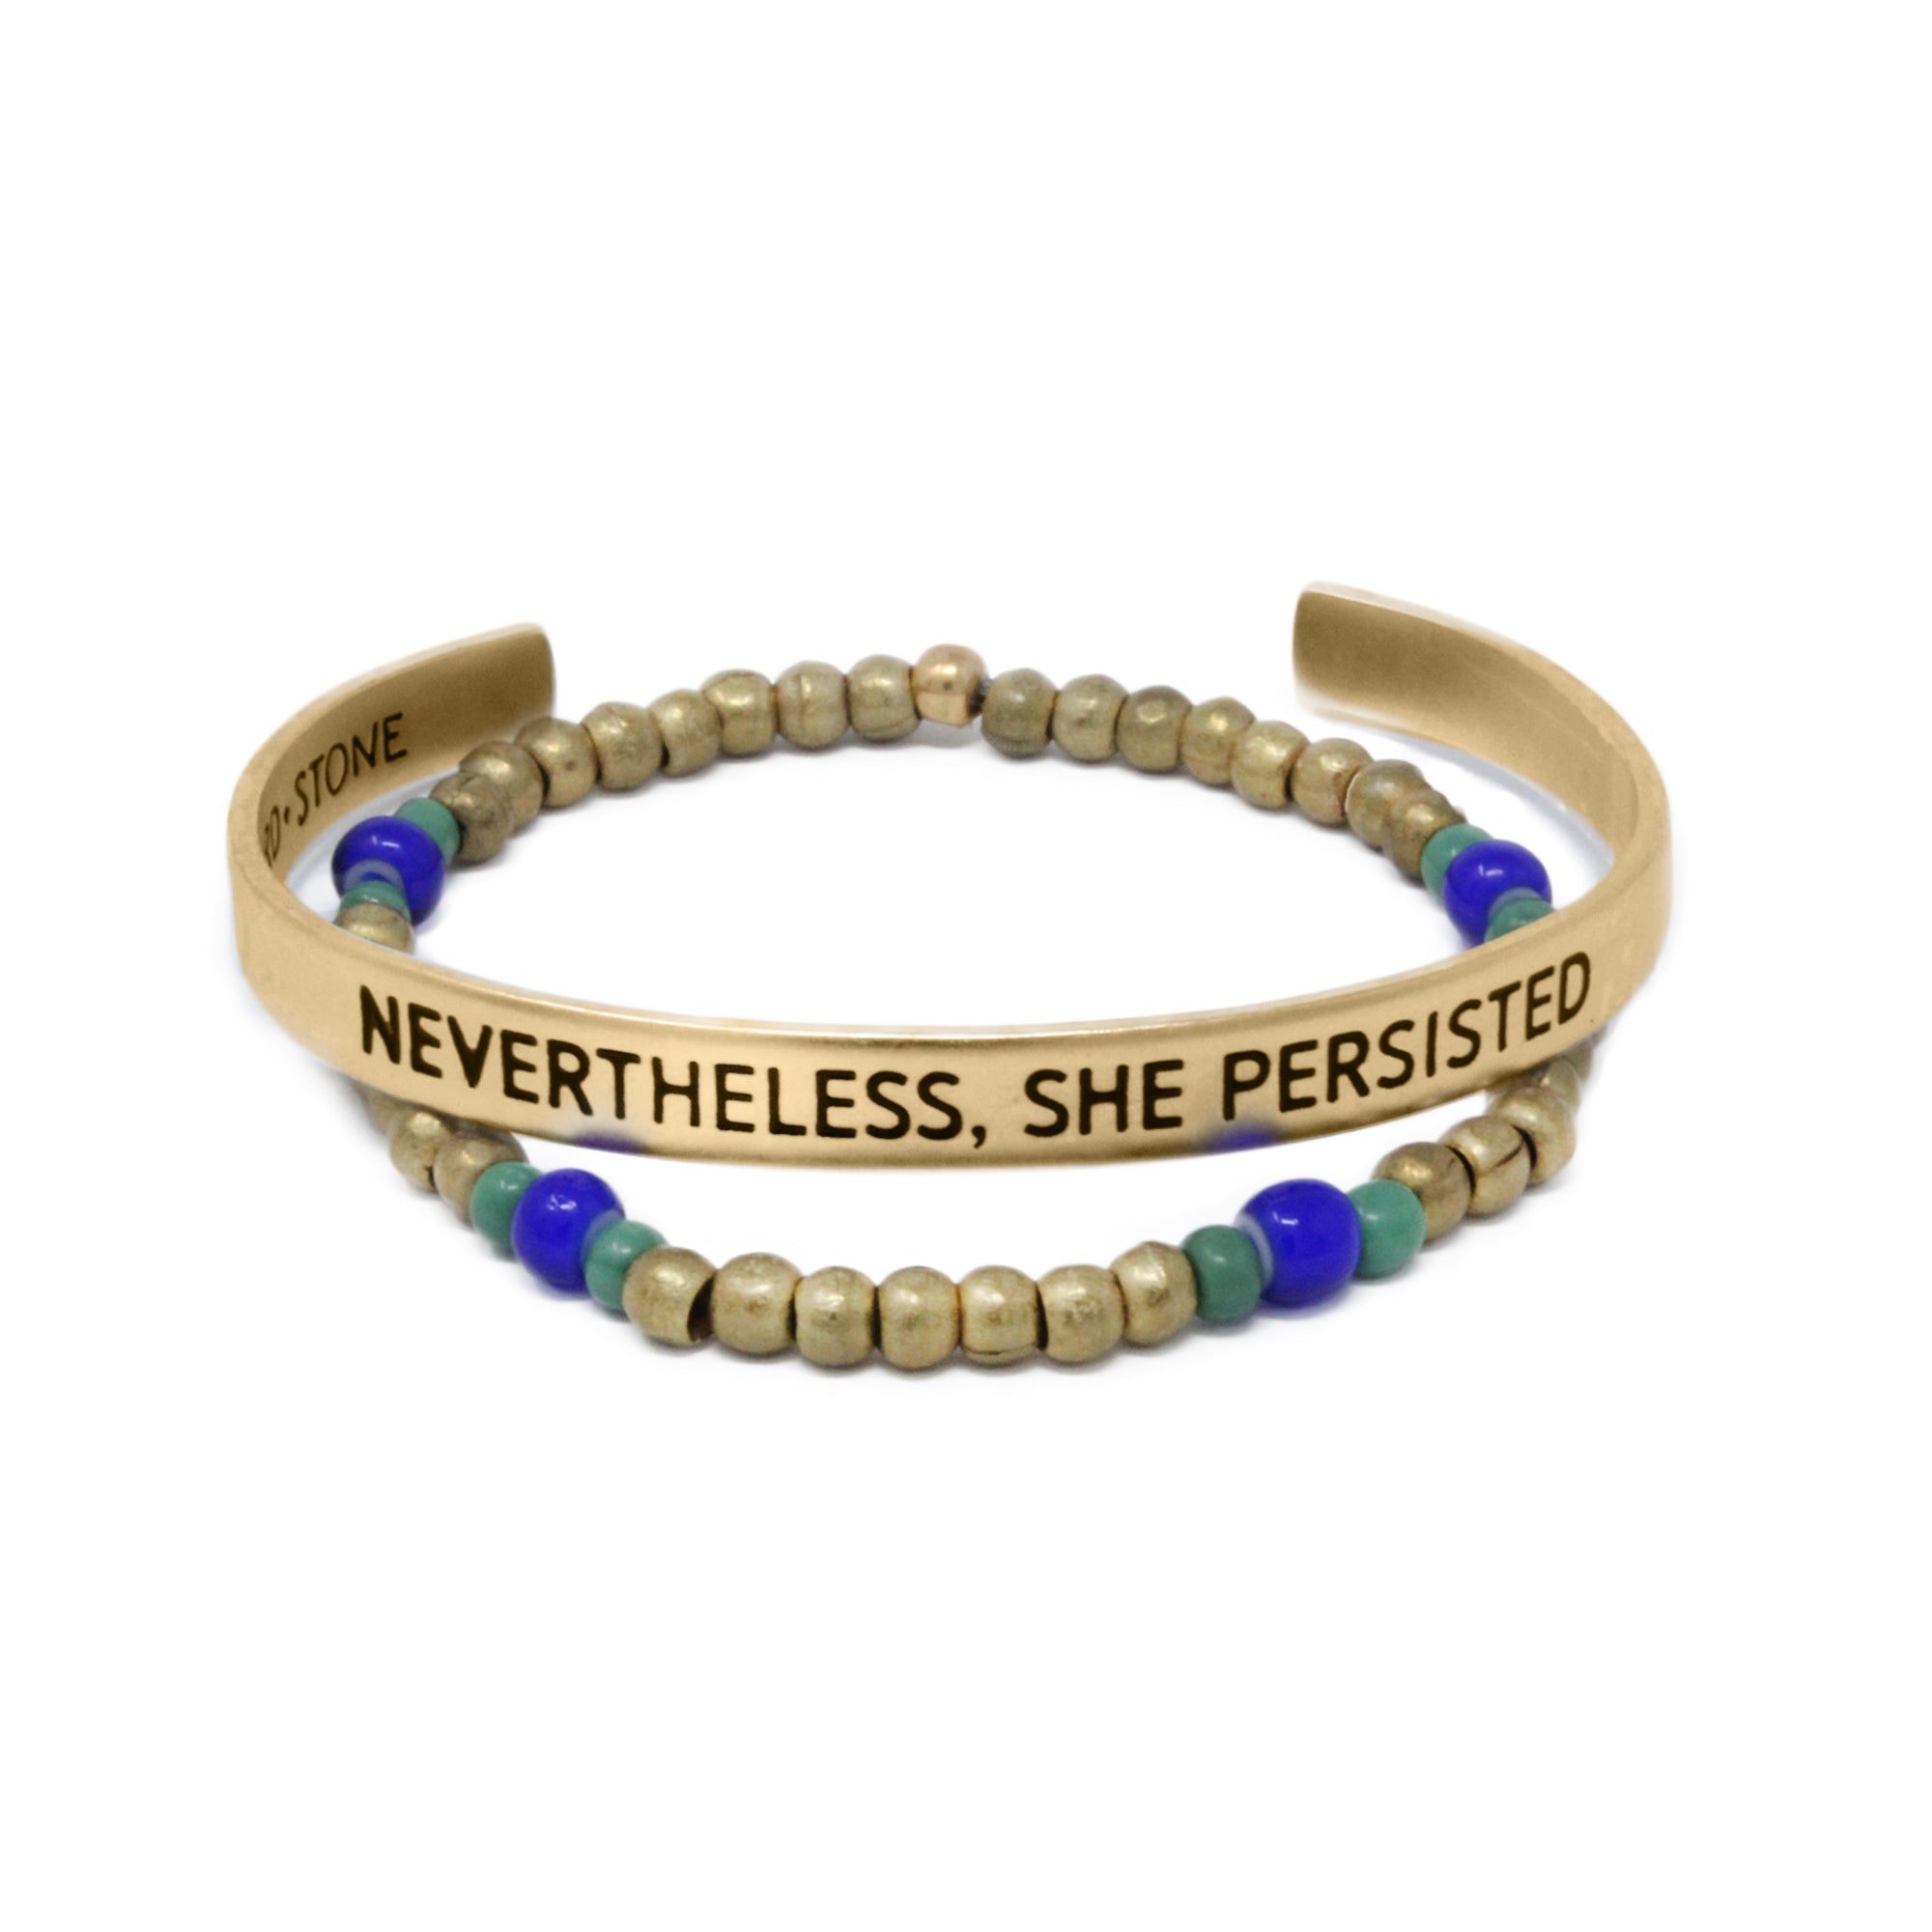 'Nevertheless, She Persisted' + Ruth Bracelet Set